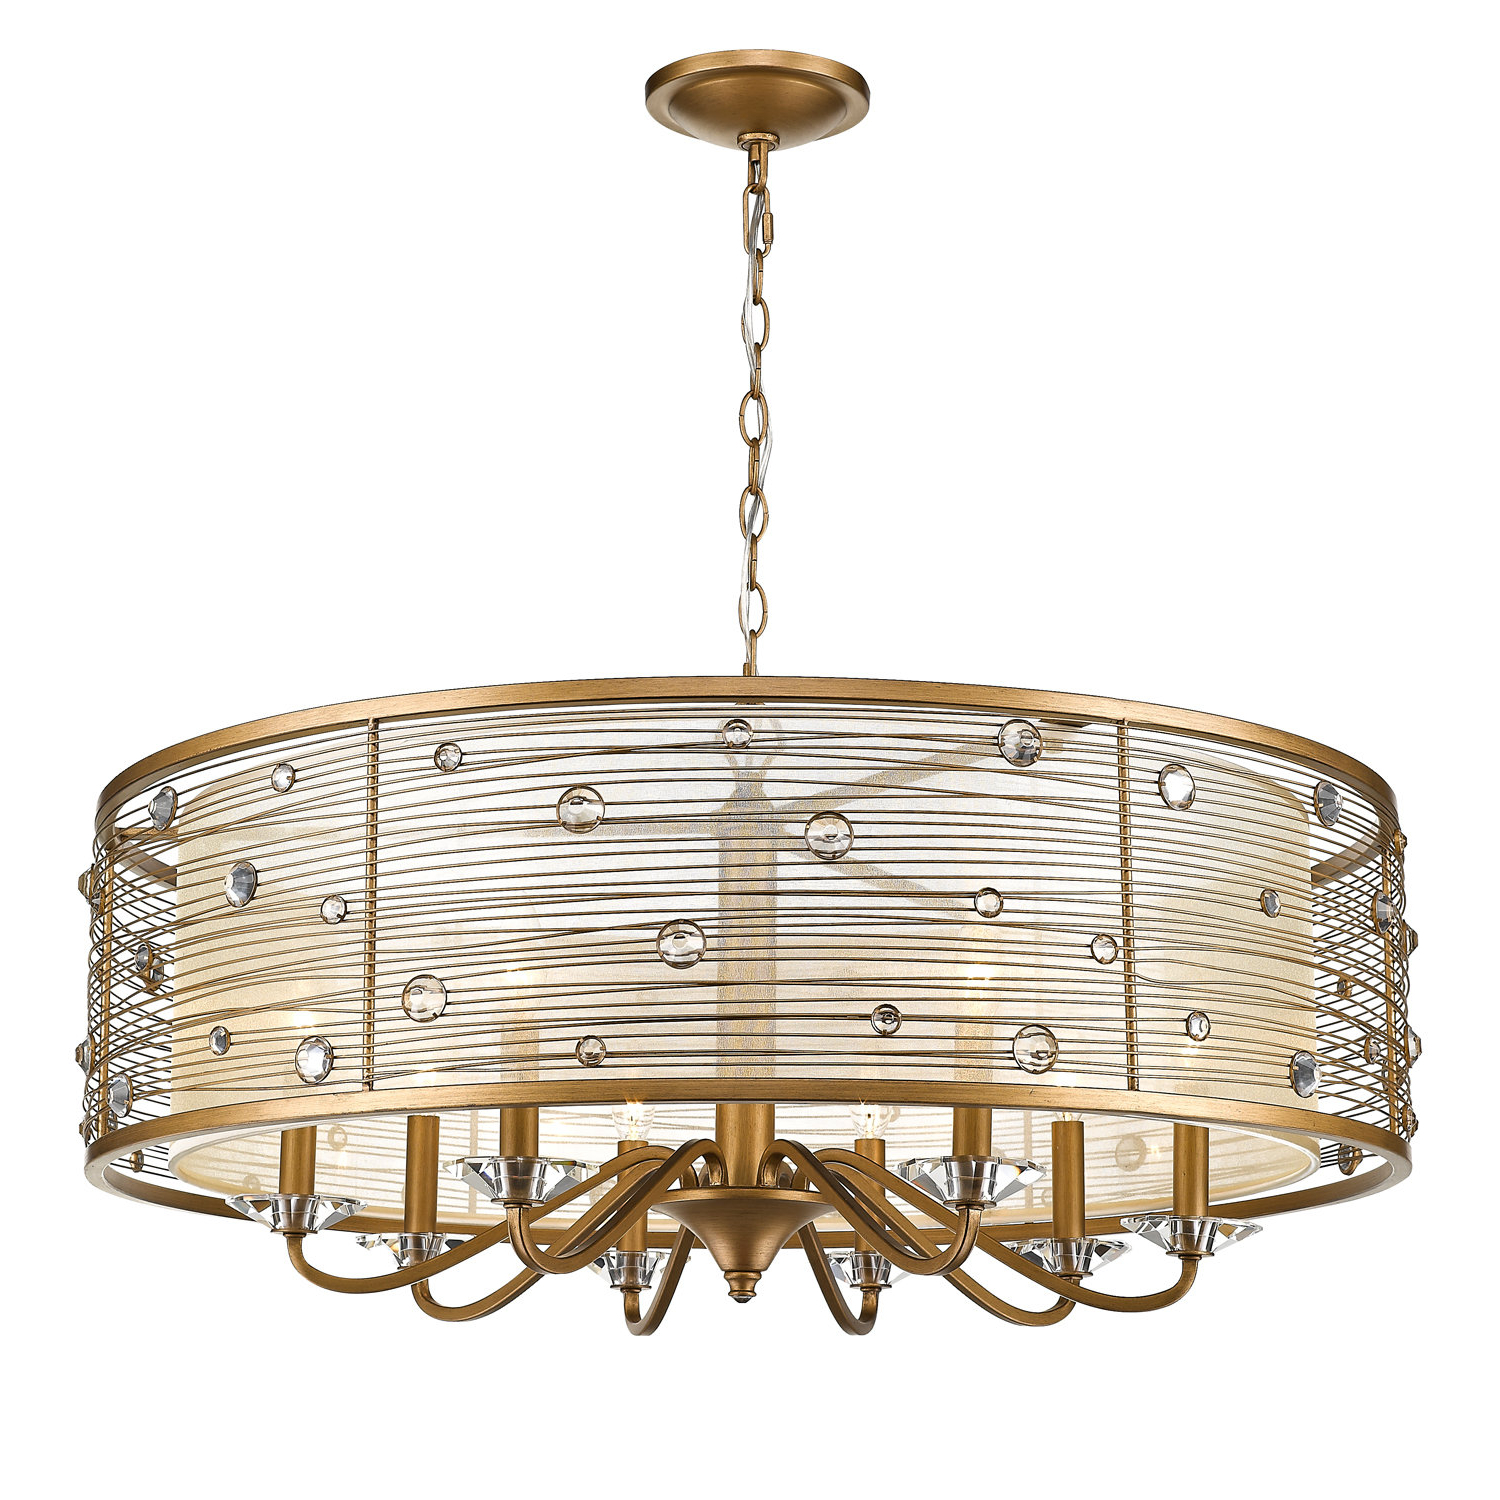 Best And Newest Hermione 5 Light Drum Chandeliers Throughout Hermione 8 Light Drum Chandelier (View 1 of 20)